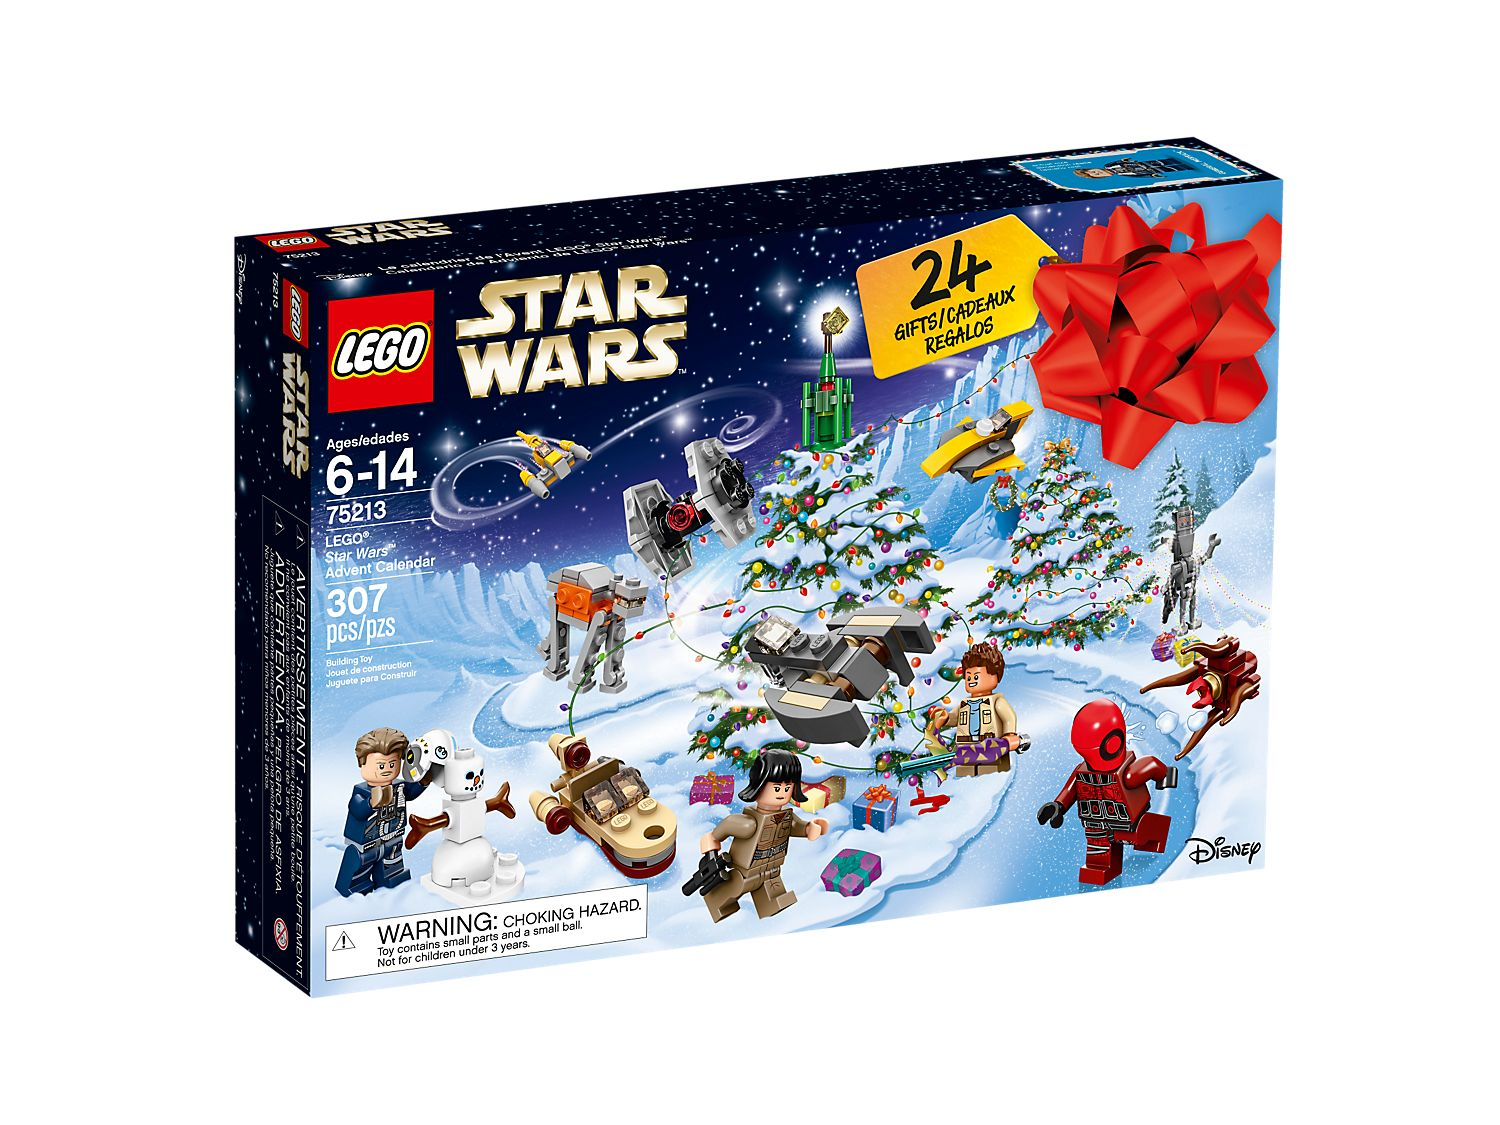 Calendrier Star Wars 2019.Lego Star Wars Advent Calendar 75213 Star Wars Buy Online At The Official Lego Shop Gb